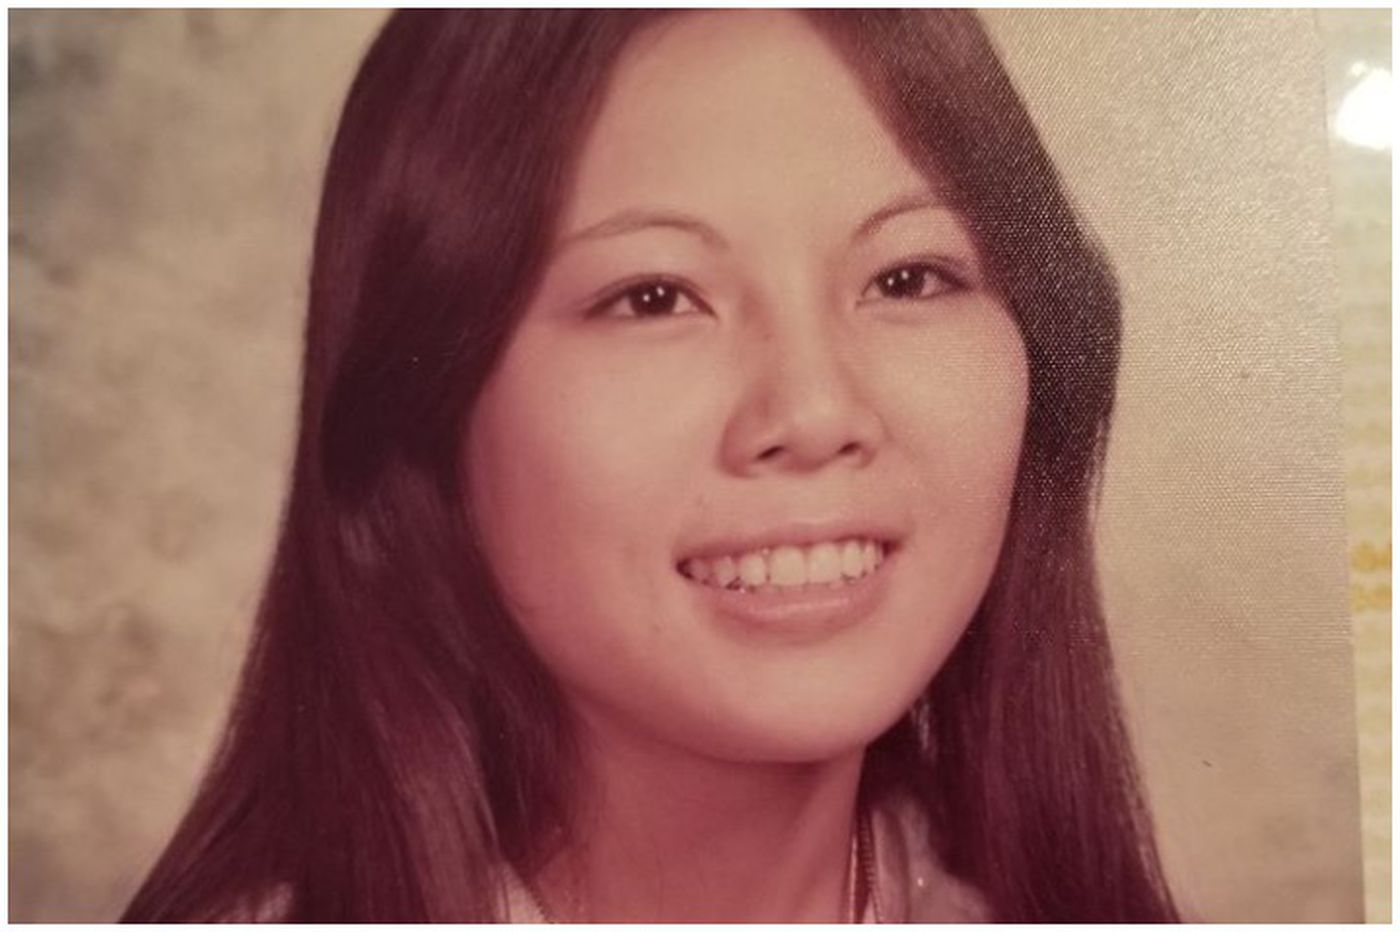 A 14-year-old girl was found dead 43 years ago. A South Jersey woman's DNA just helped ID her.